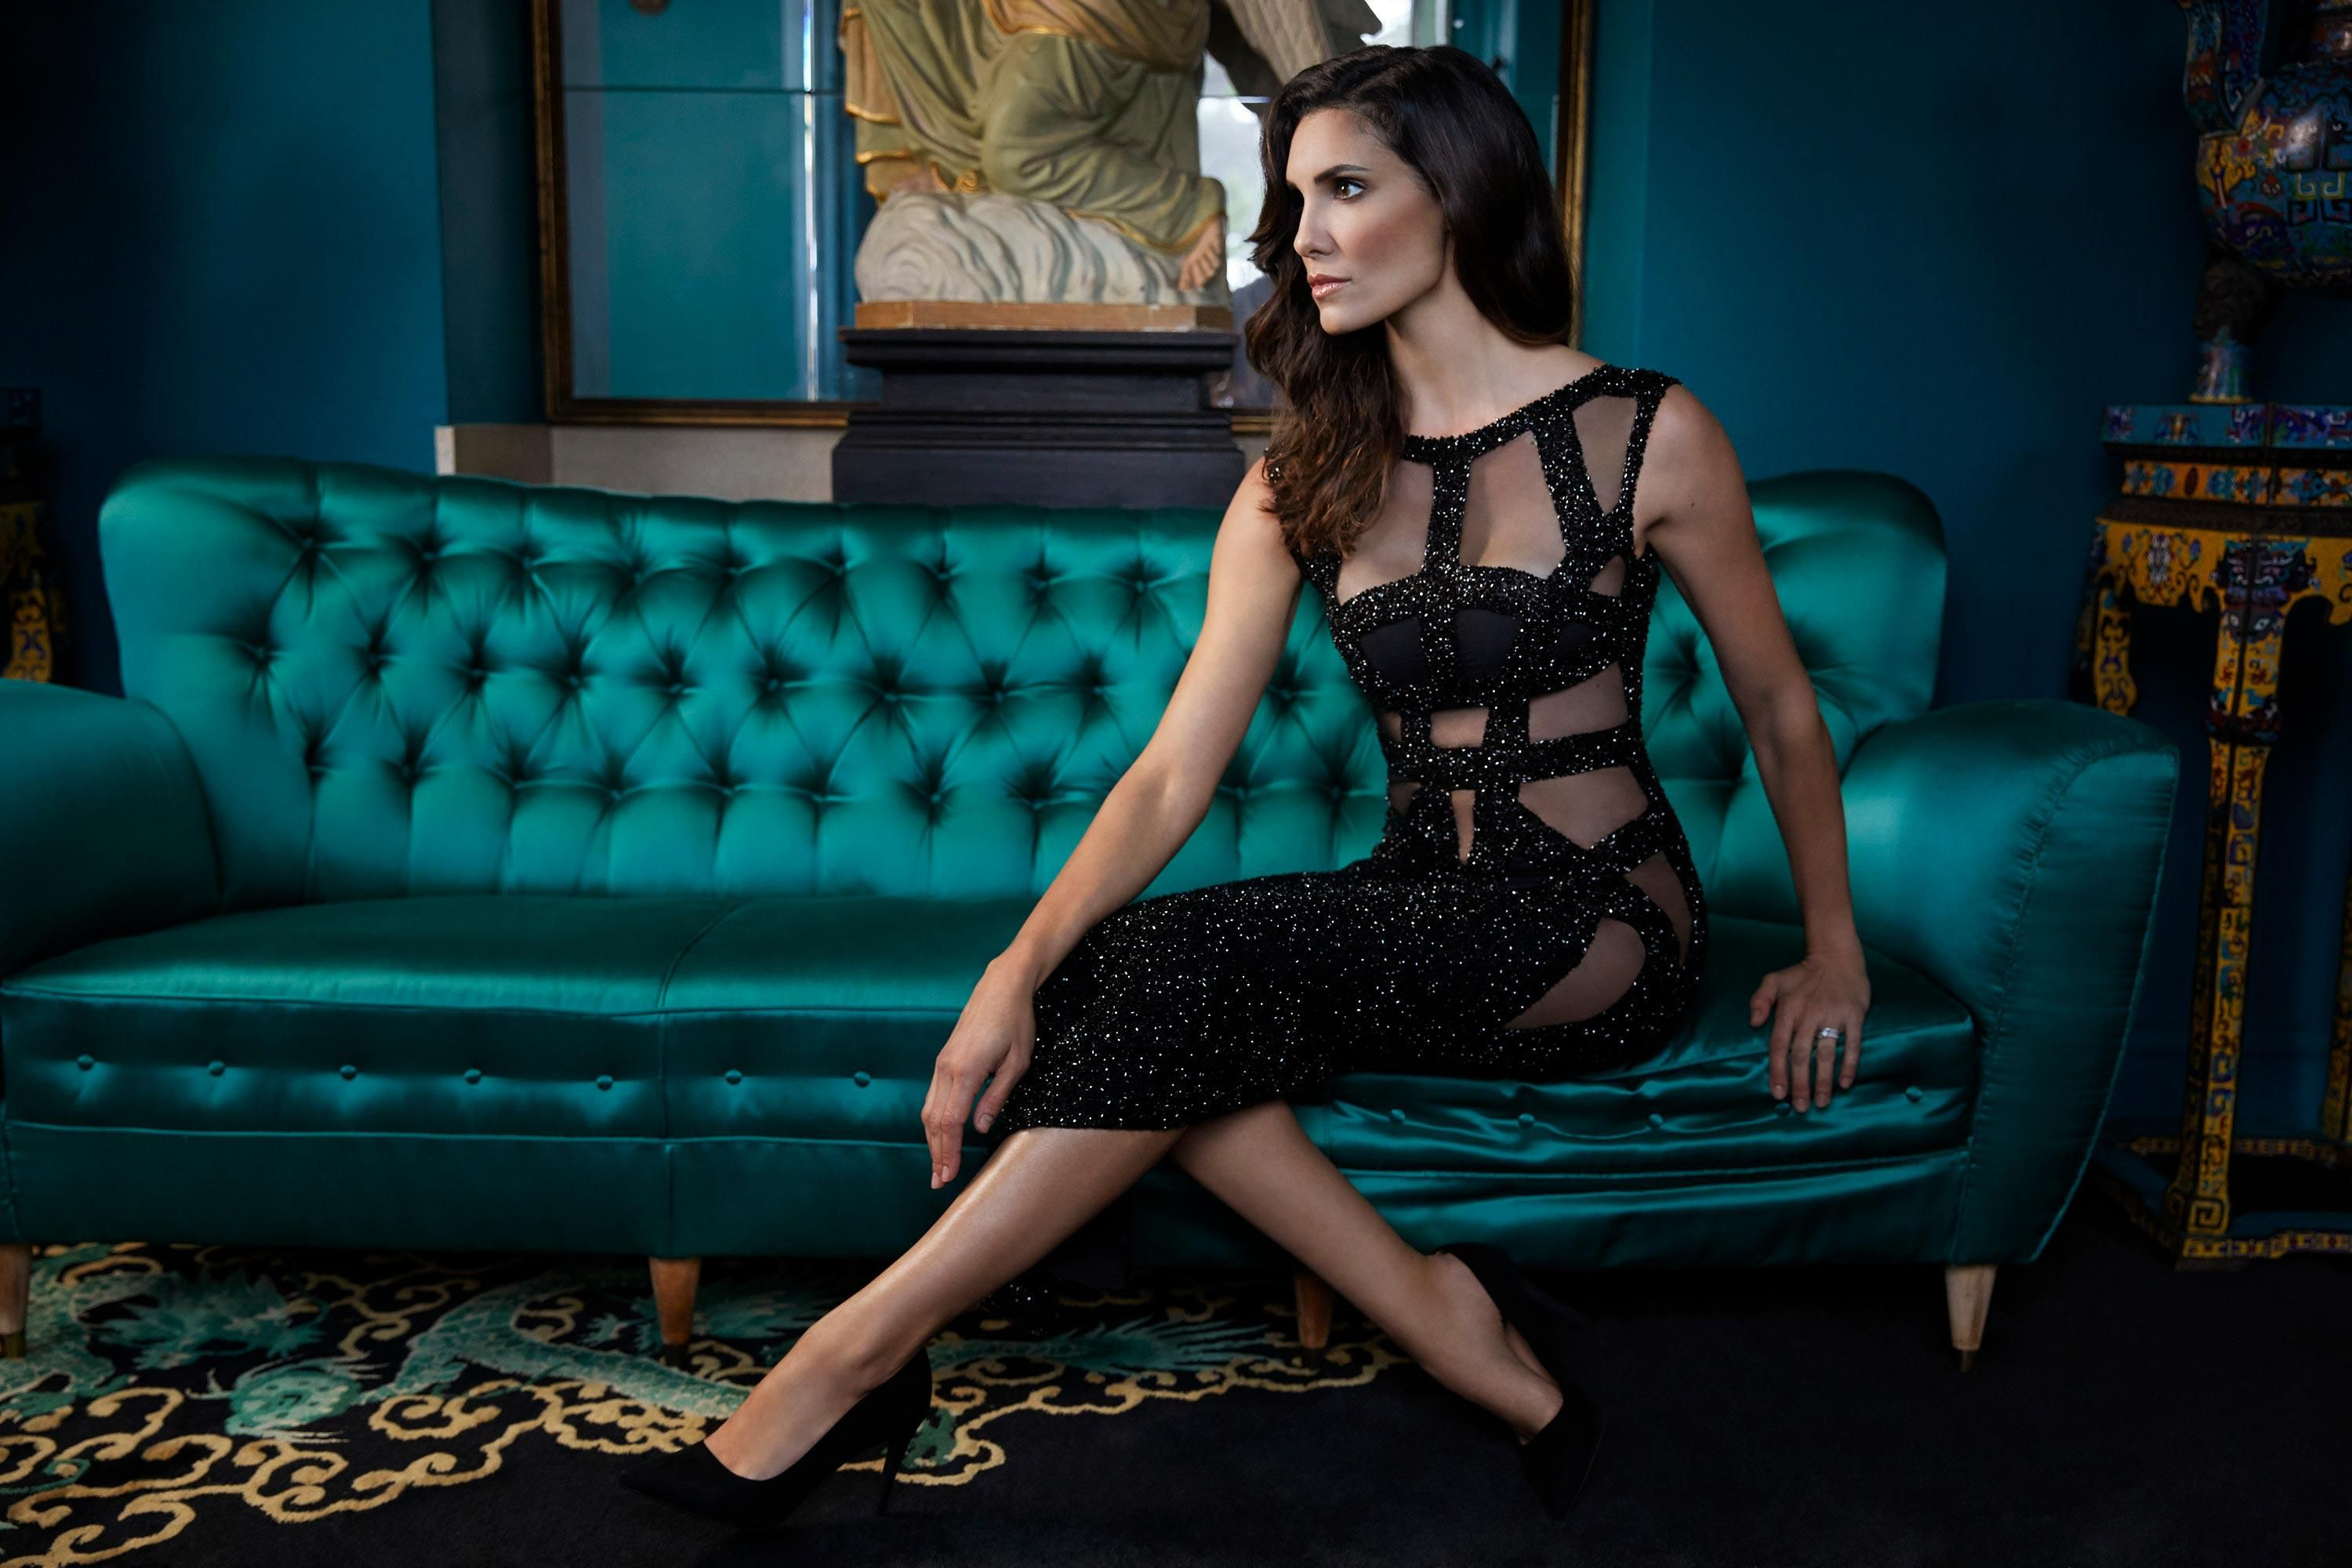 \u200bDaniela Ruah in a black dress with sheer peekaboo cutouts